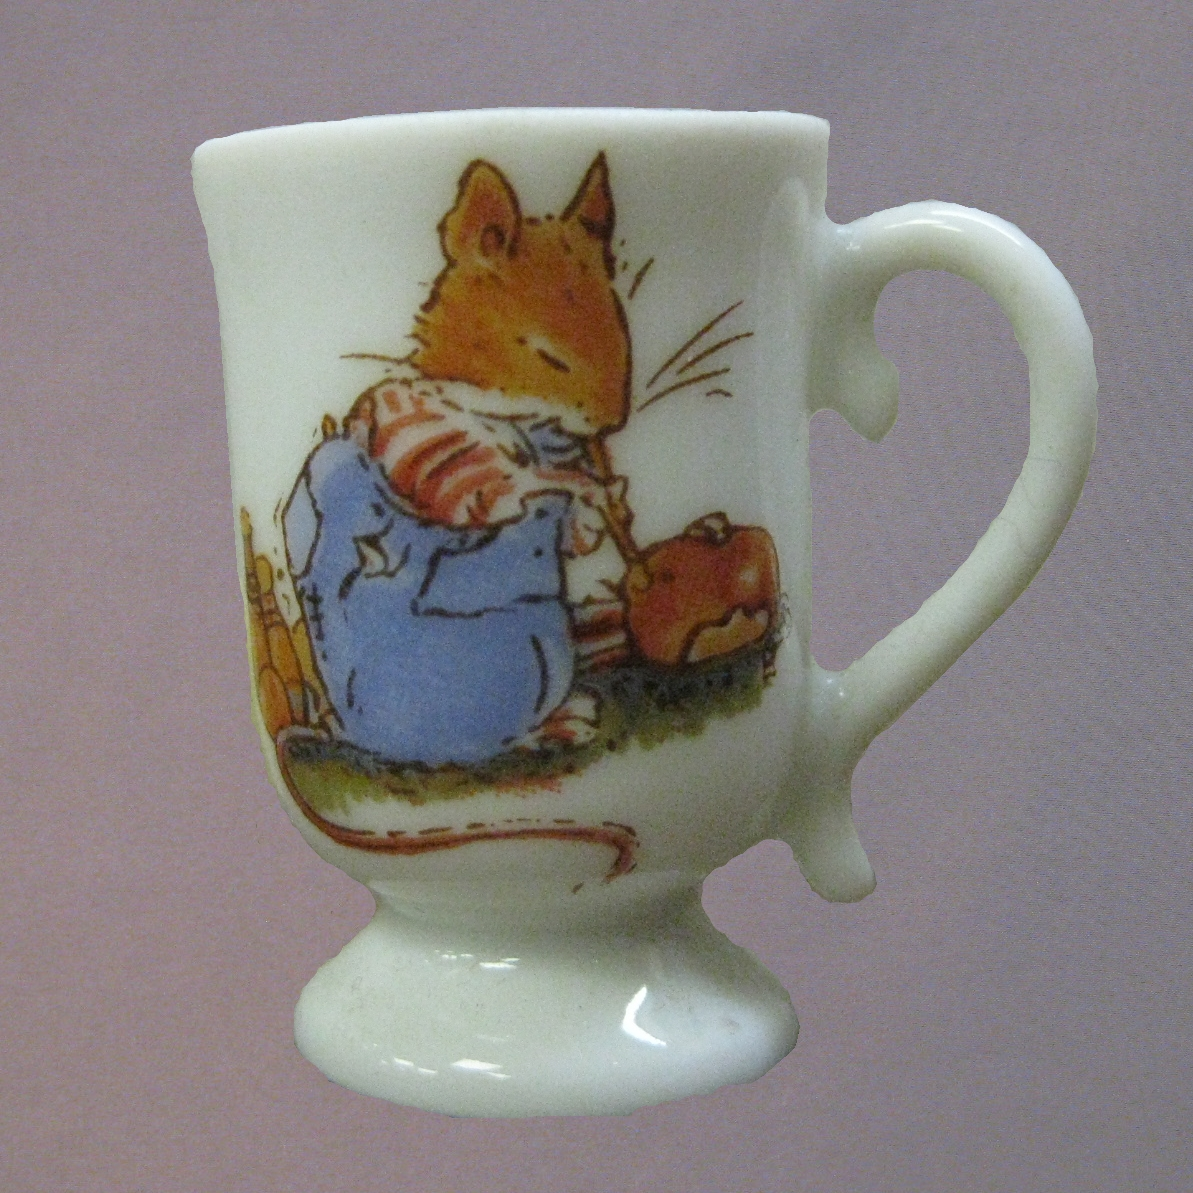 Brambly Hedge mini footed mug (NOT Royal Doulton)